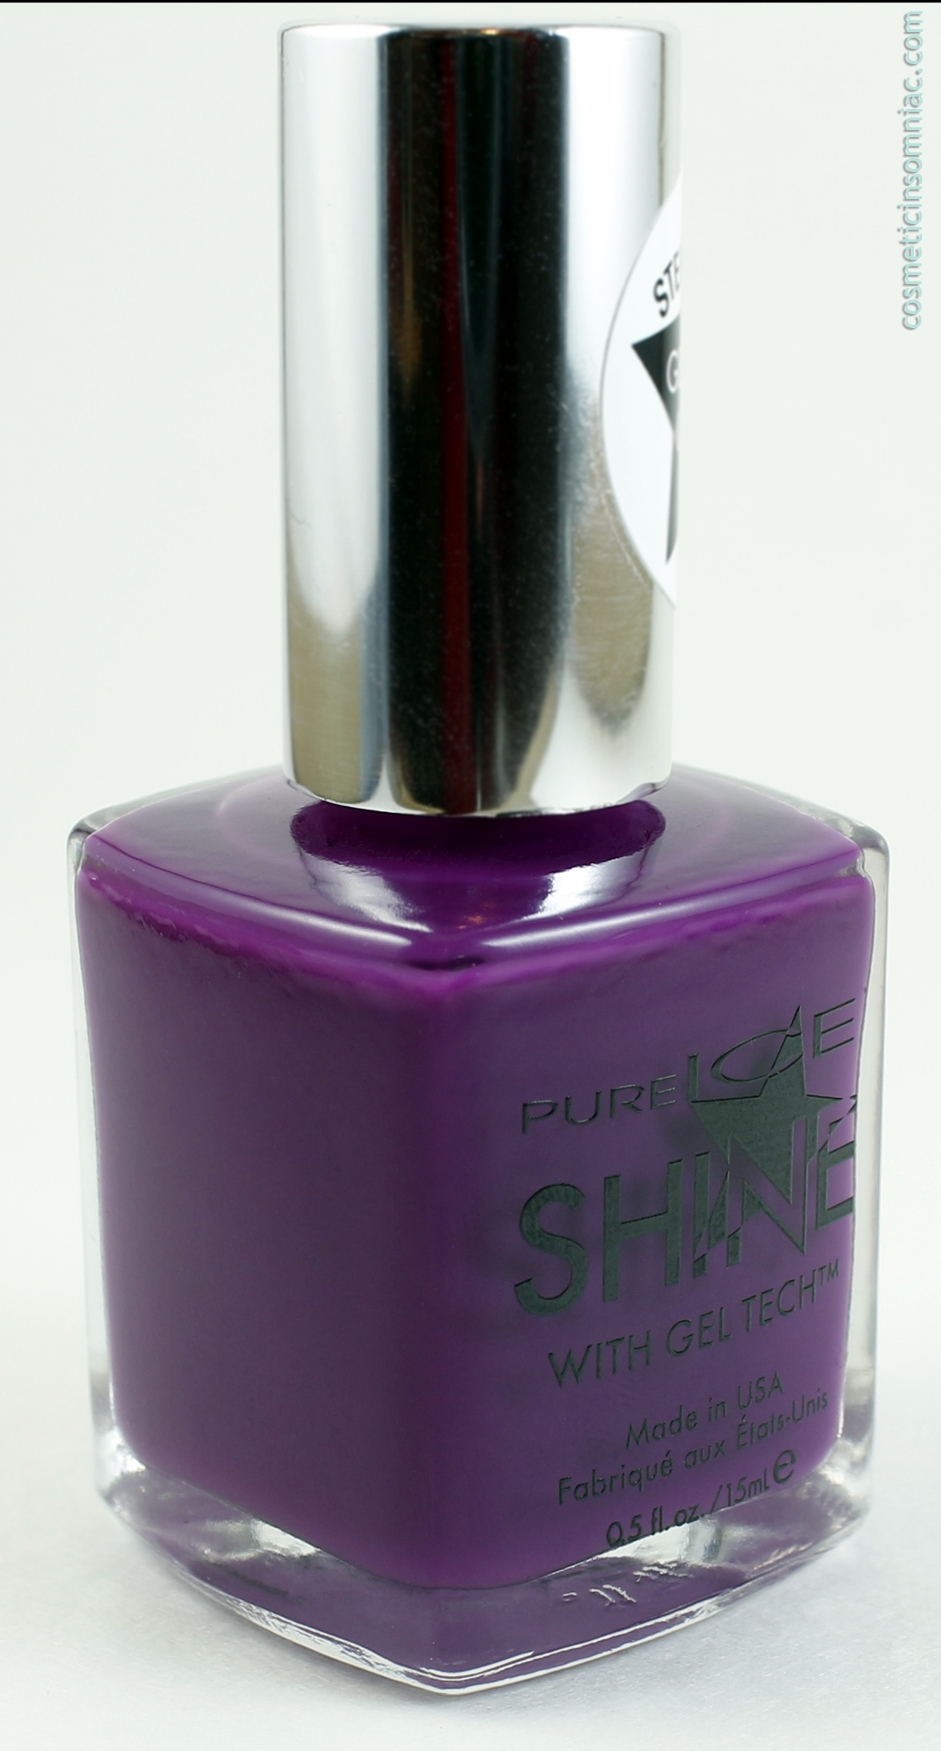 Pure Ice Shine with Gel Tech™ - Shock & Awesome  0.5 fl. oz. / 15 ml